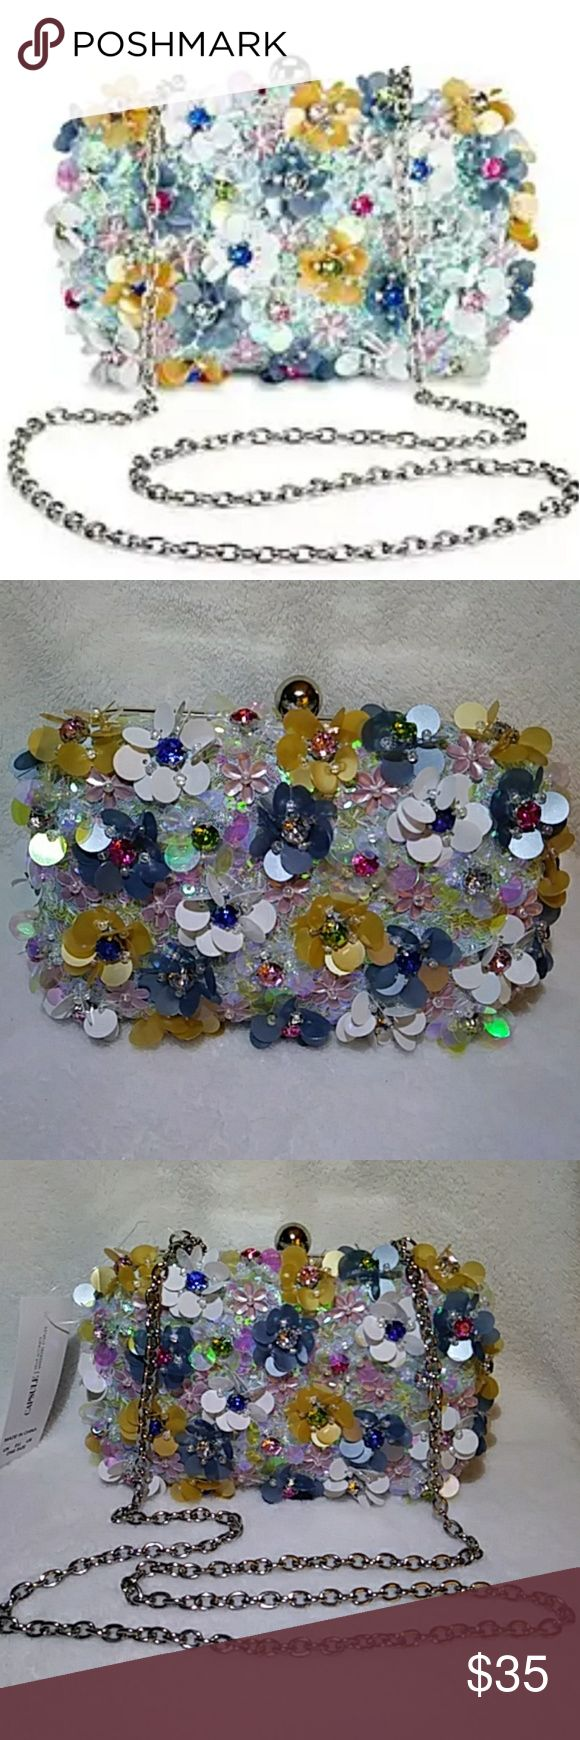 """Capsule Floral Embellished Clutch Floral 3D embellished clutch bag. Has a clasp fastening and chain strap. Chain can very neatly be put inside clutch if you choose to carry it by hand. Stunning iridescent and multi- colored sequins and colored beads cover this bag all over the front. 1 slip pocket inside. Approximately 4"""" x 6.5"""". A very unique 3D clutch you can carry day or night! Has two small imperfections, barely noticeable as you can see in pictures 3 & 7 Had to have happened during…"""